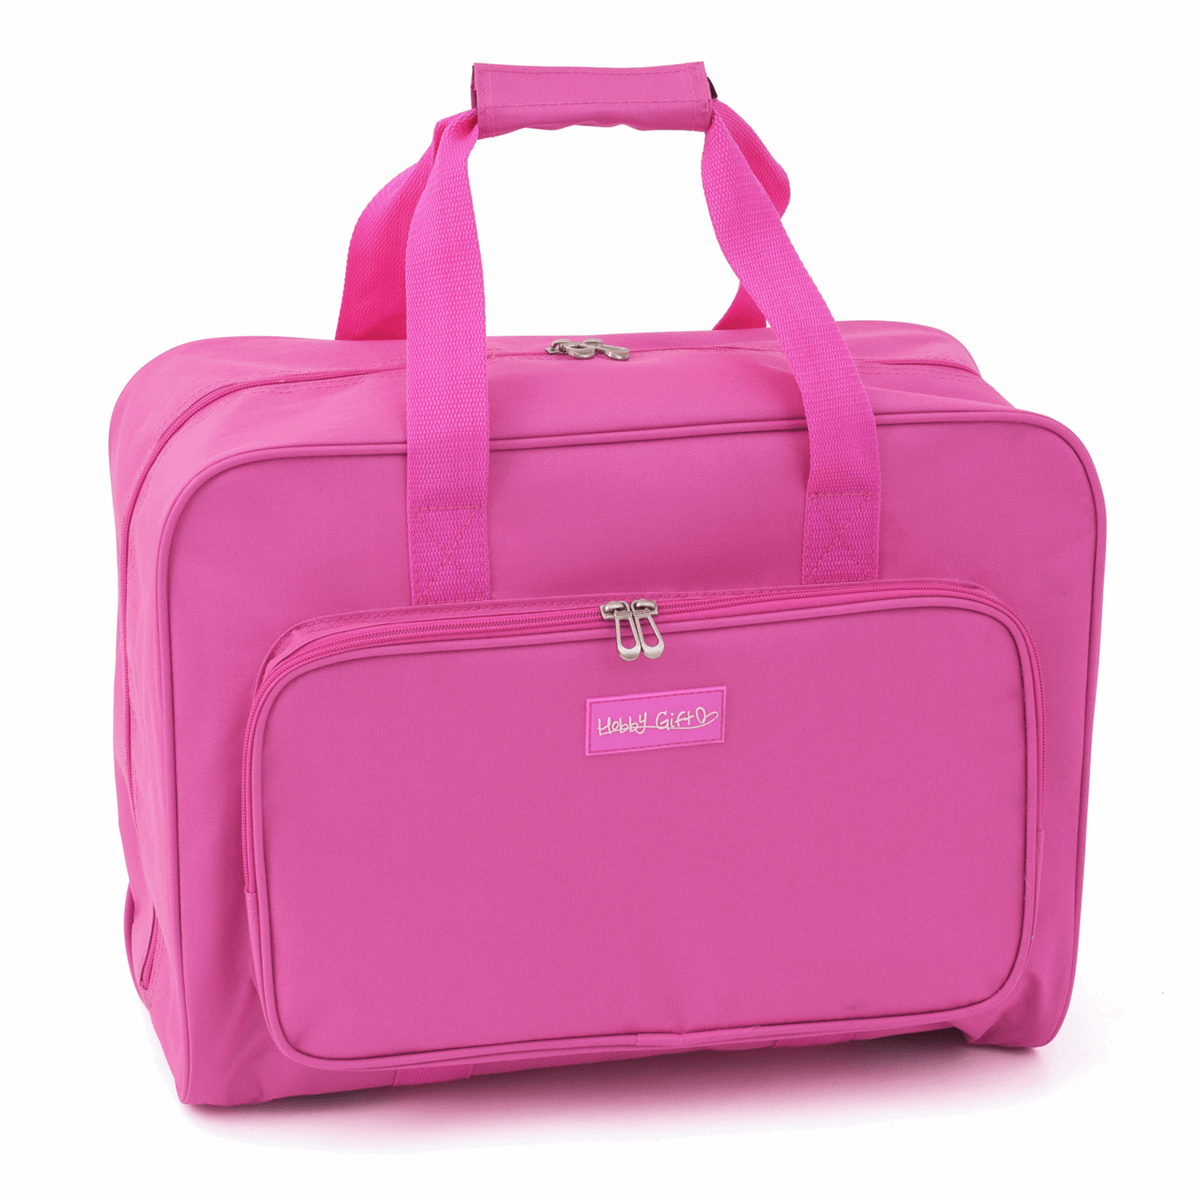 Picture of Sewing Machine Bag: Pink